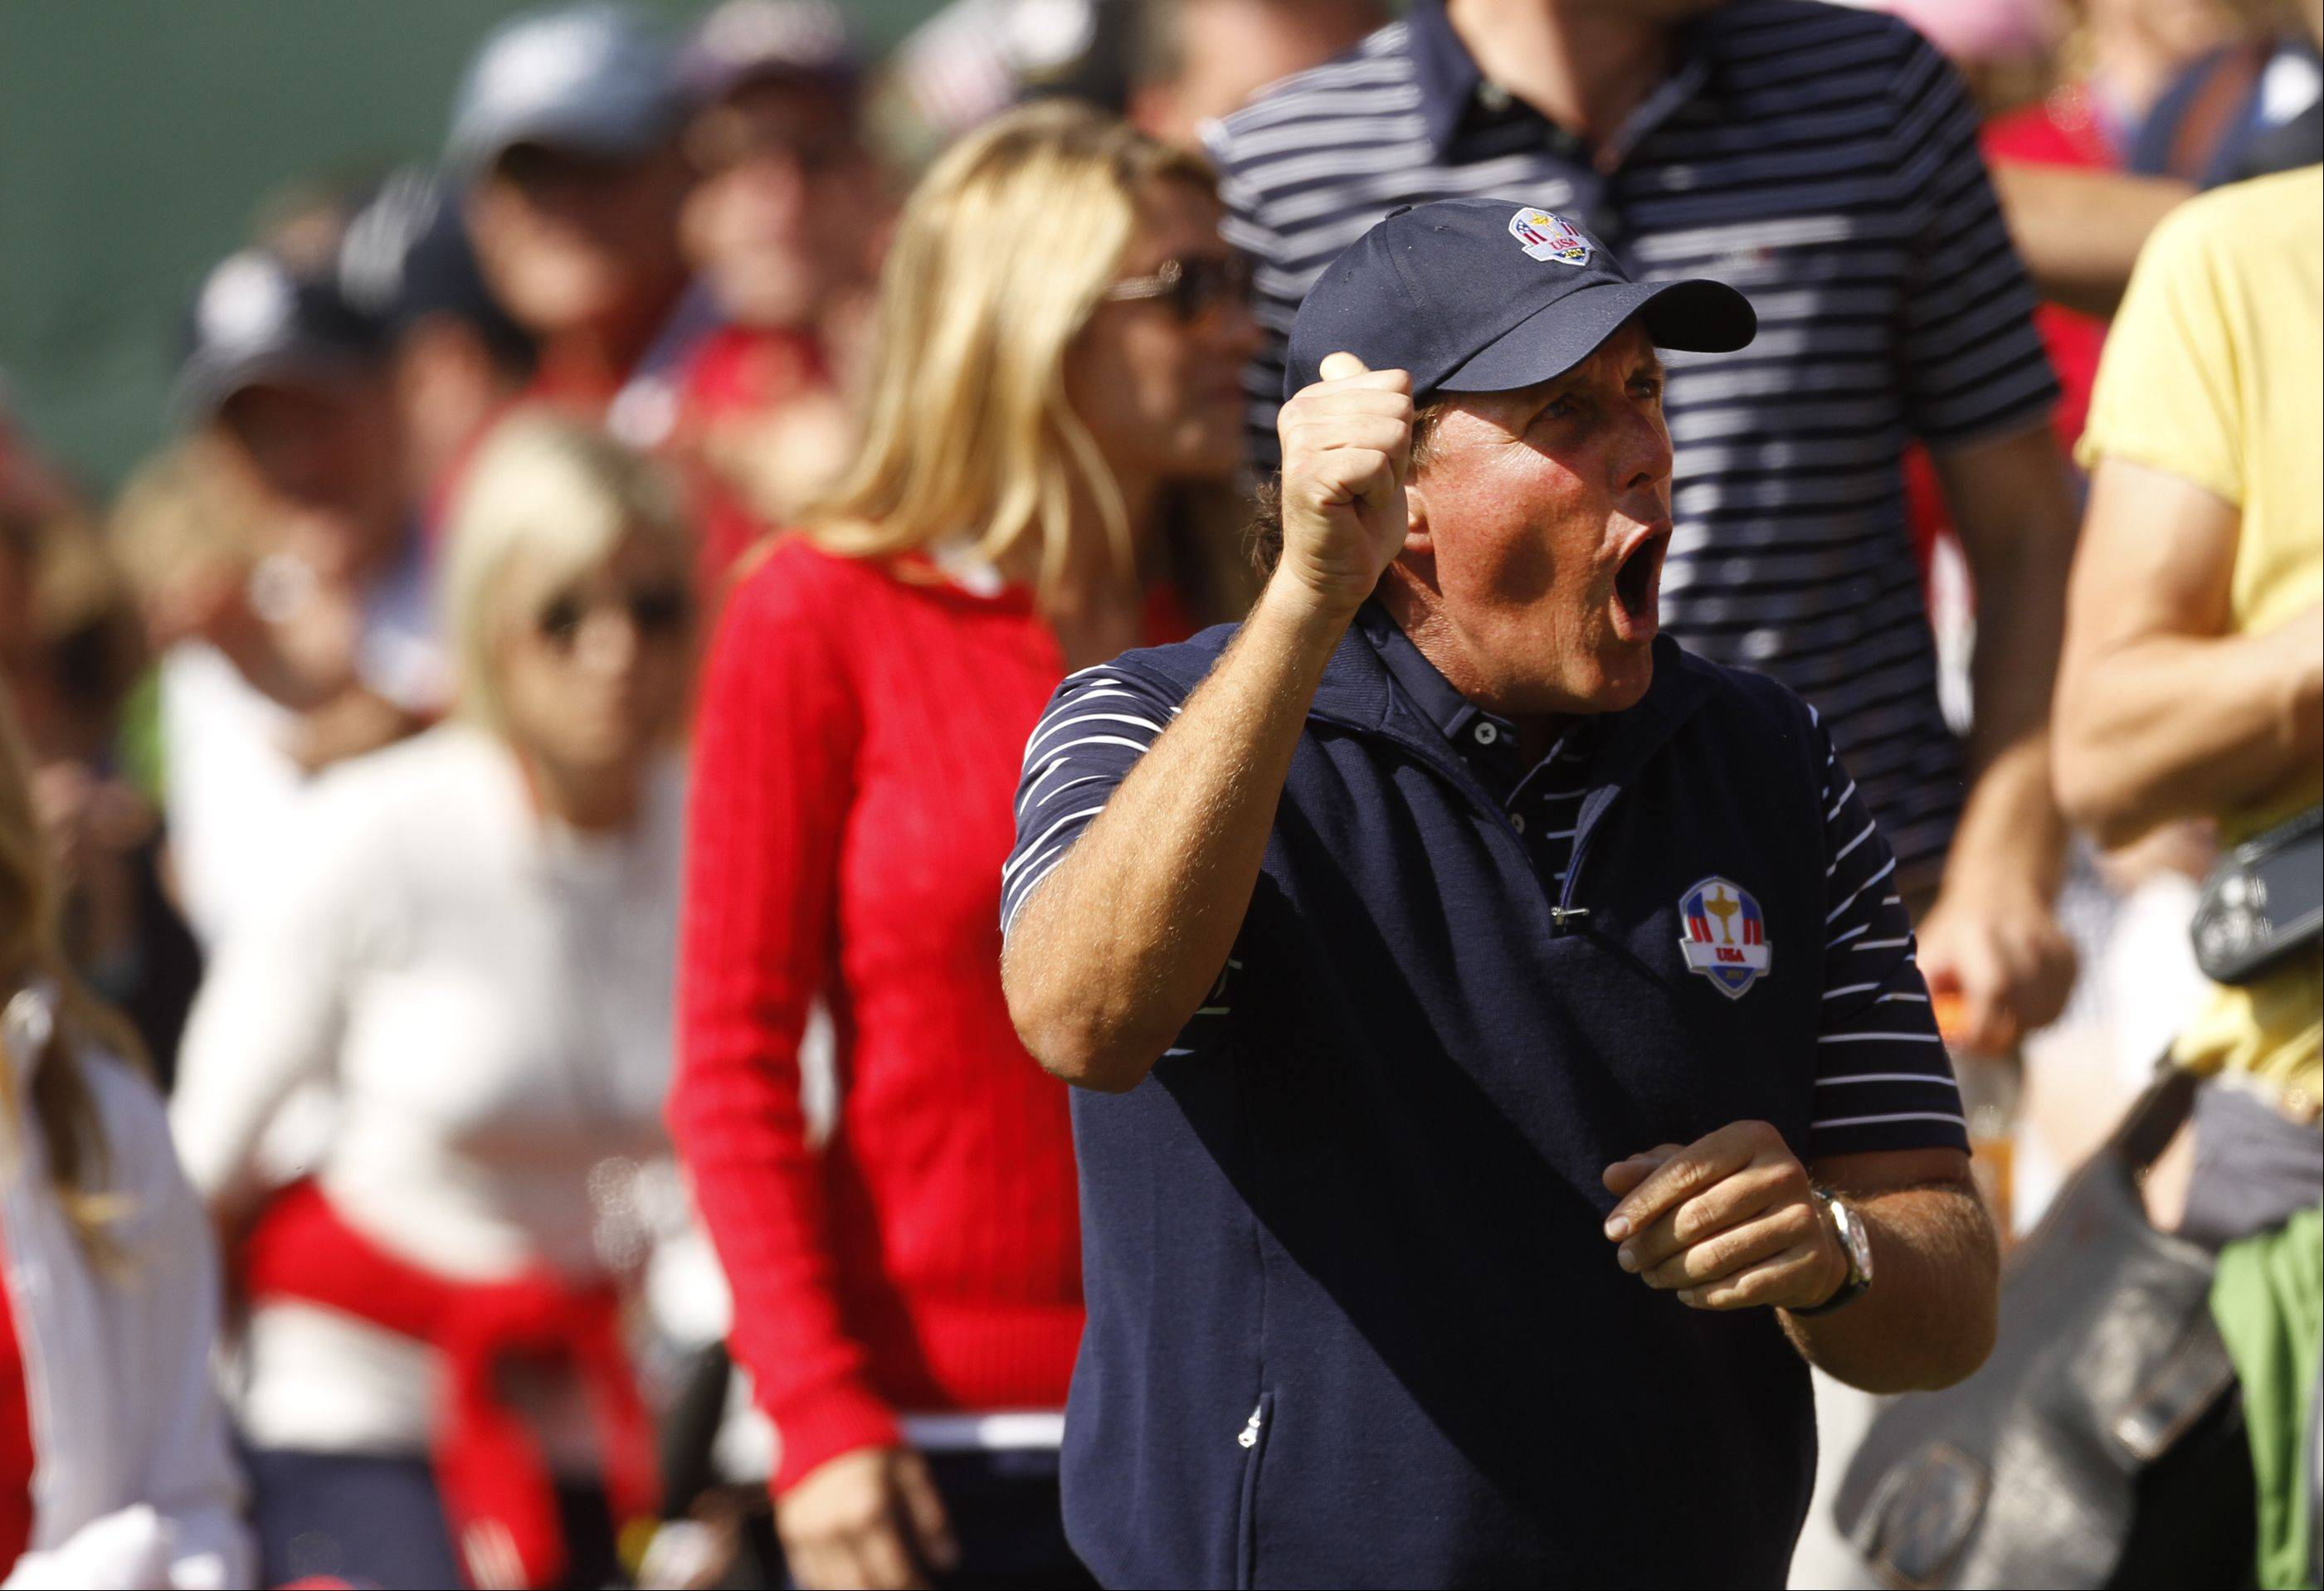 Phil Mickelson tries to pump up the crowd at the 17th hole Saturday morning during day 2 of the 2012 Ryder Cup at Medinah Country Club.